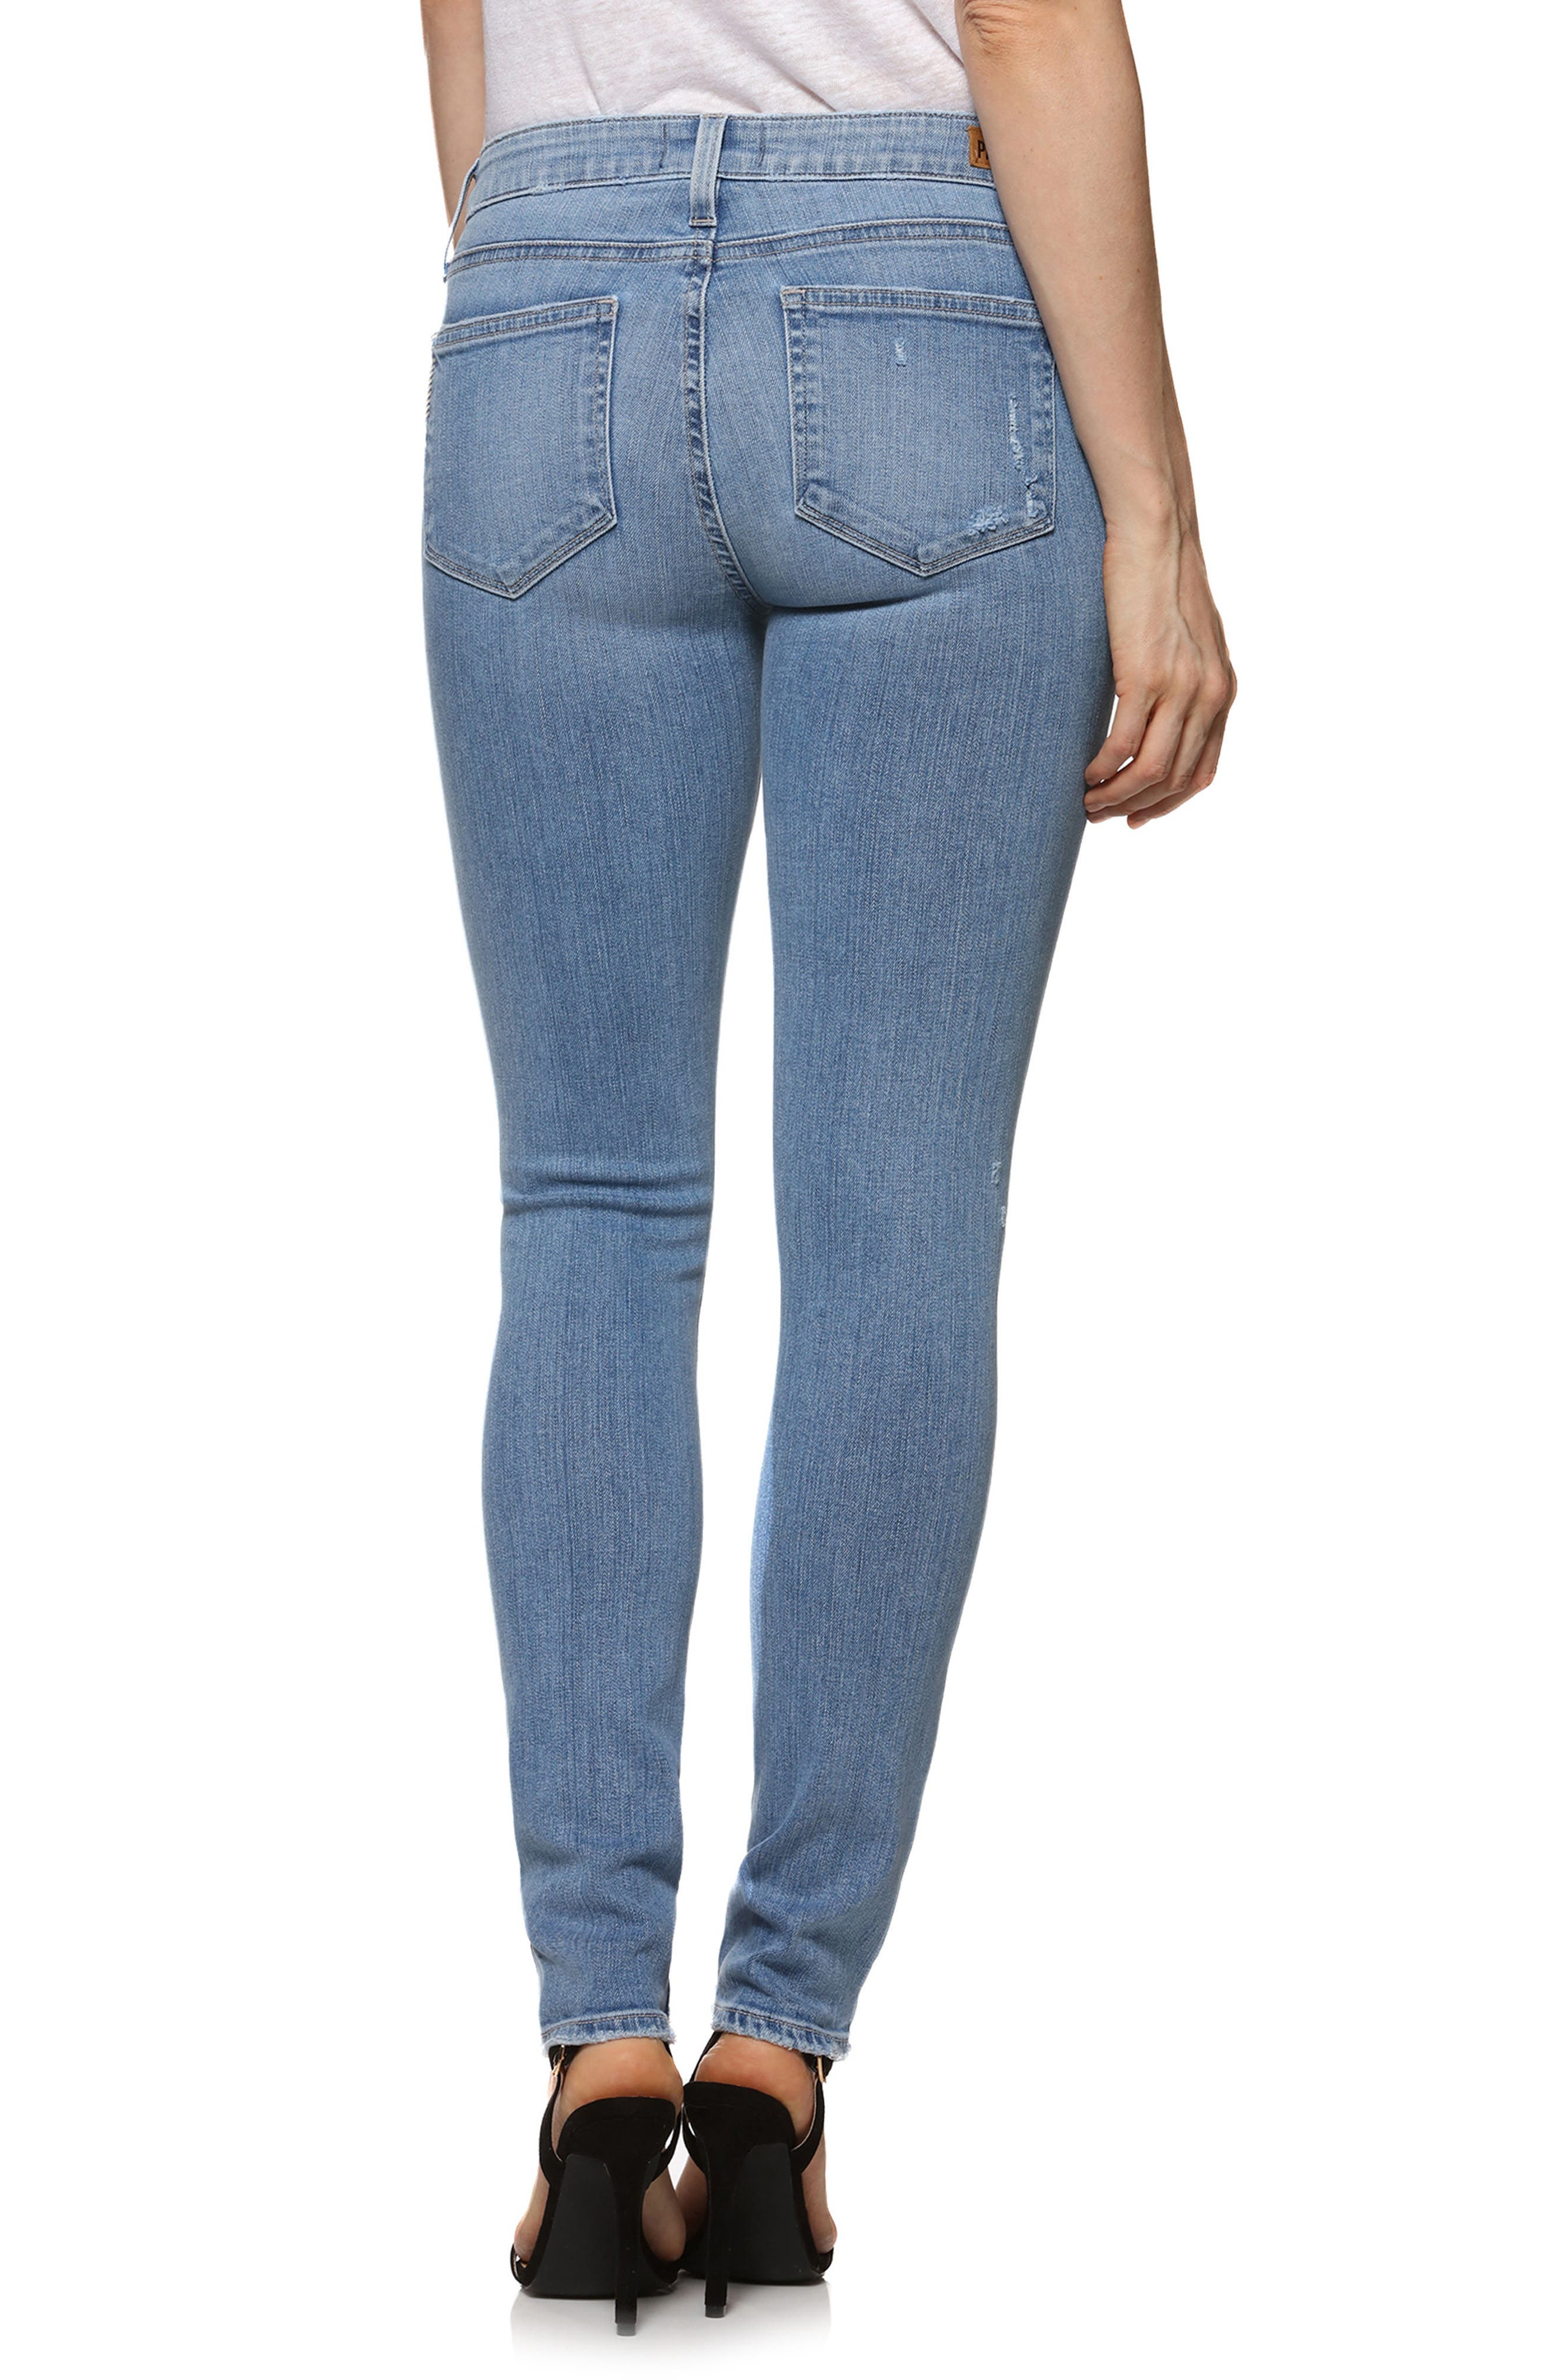 Skyline Ankle Skinny Jeans,                             Alternate thumbnail 2, color,                             400